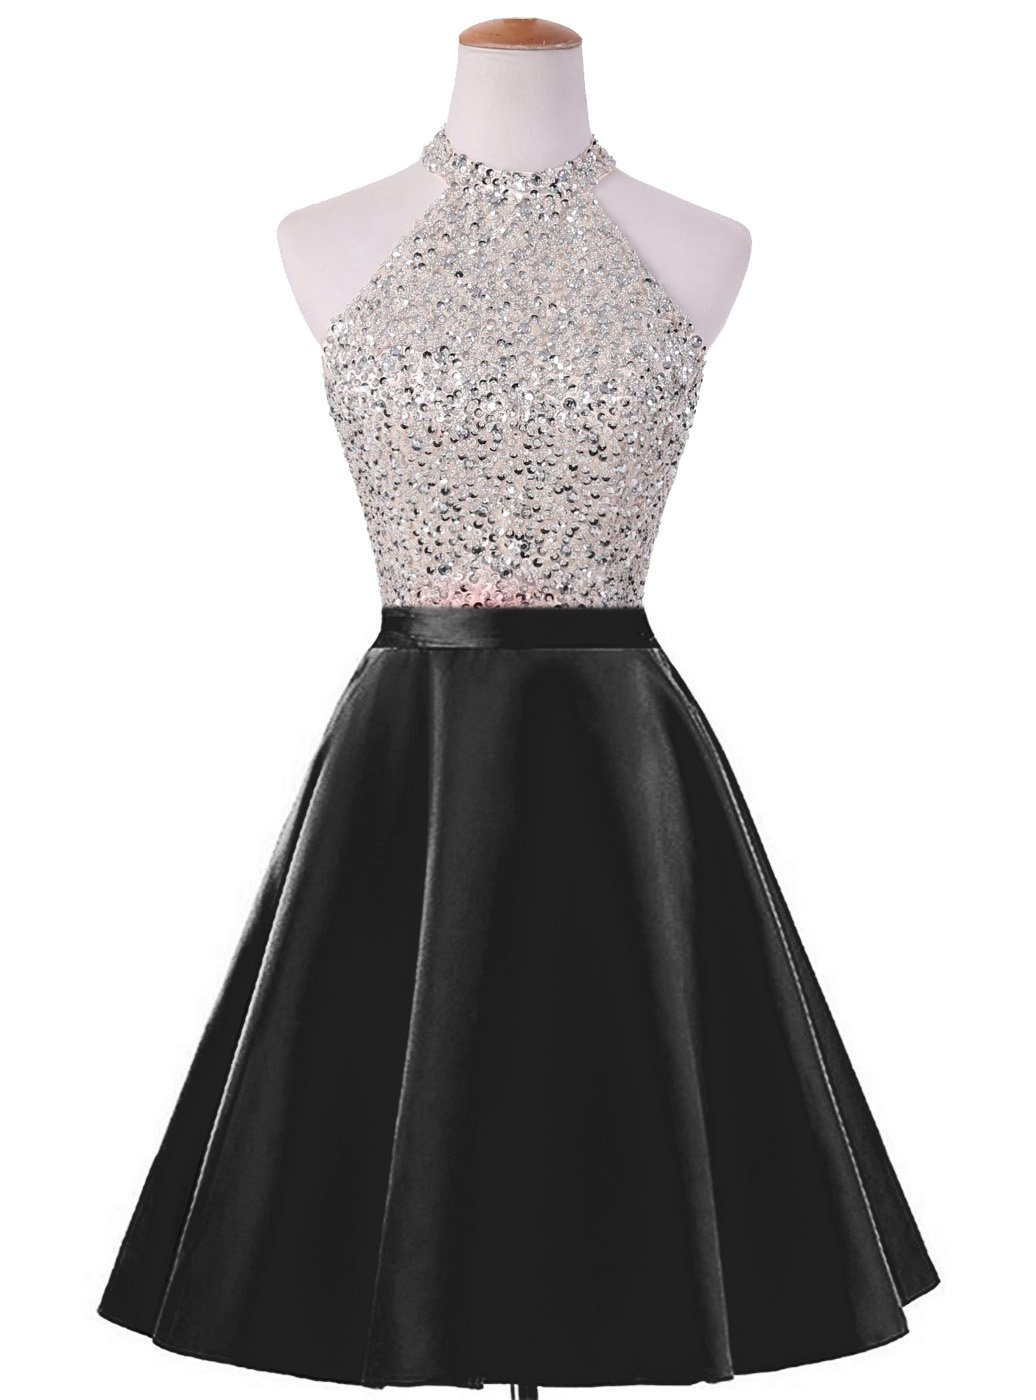 HEIMO Women's Sequined Keyhole Back Homecoming Dresses Beaded Prom Gowns Short H198 10 Black